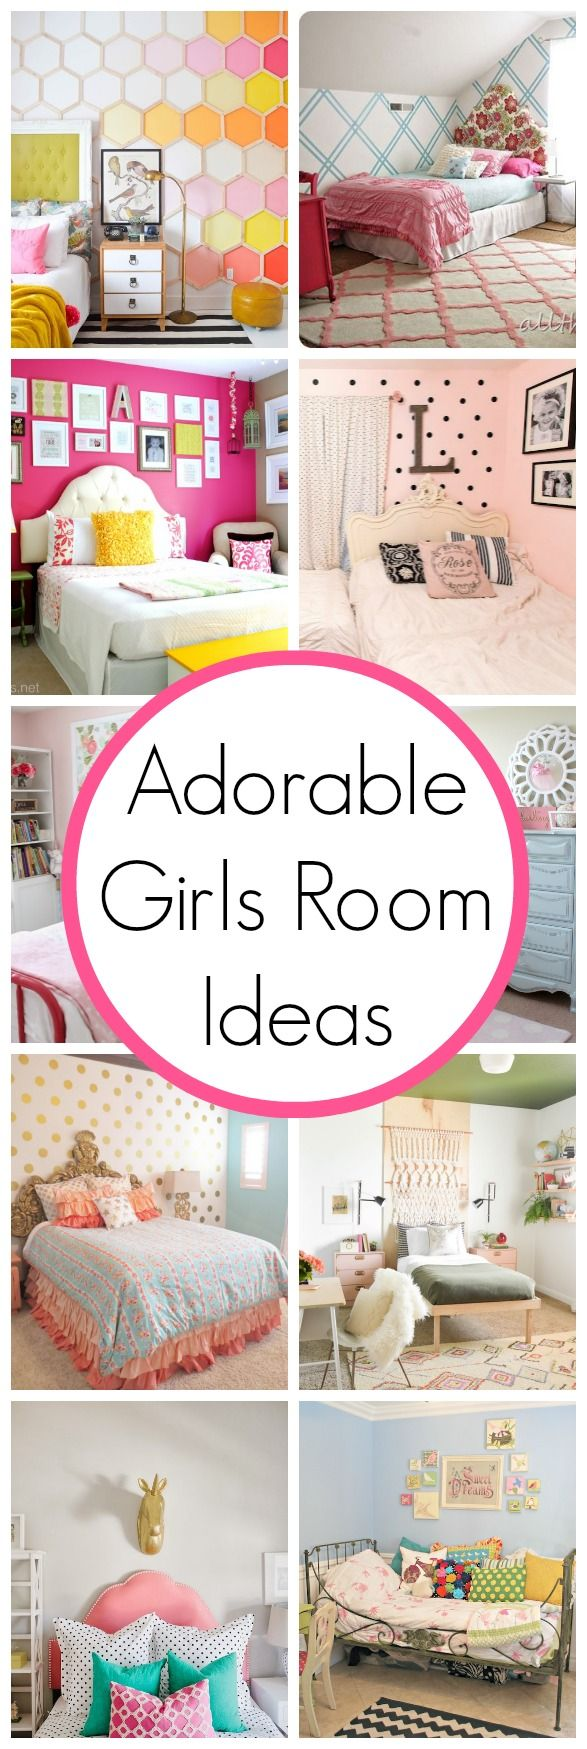 Super Cute Girls Room Ideas | www.classyclutter.net